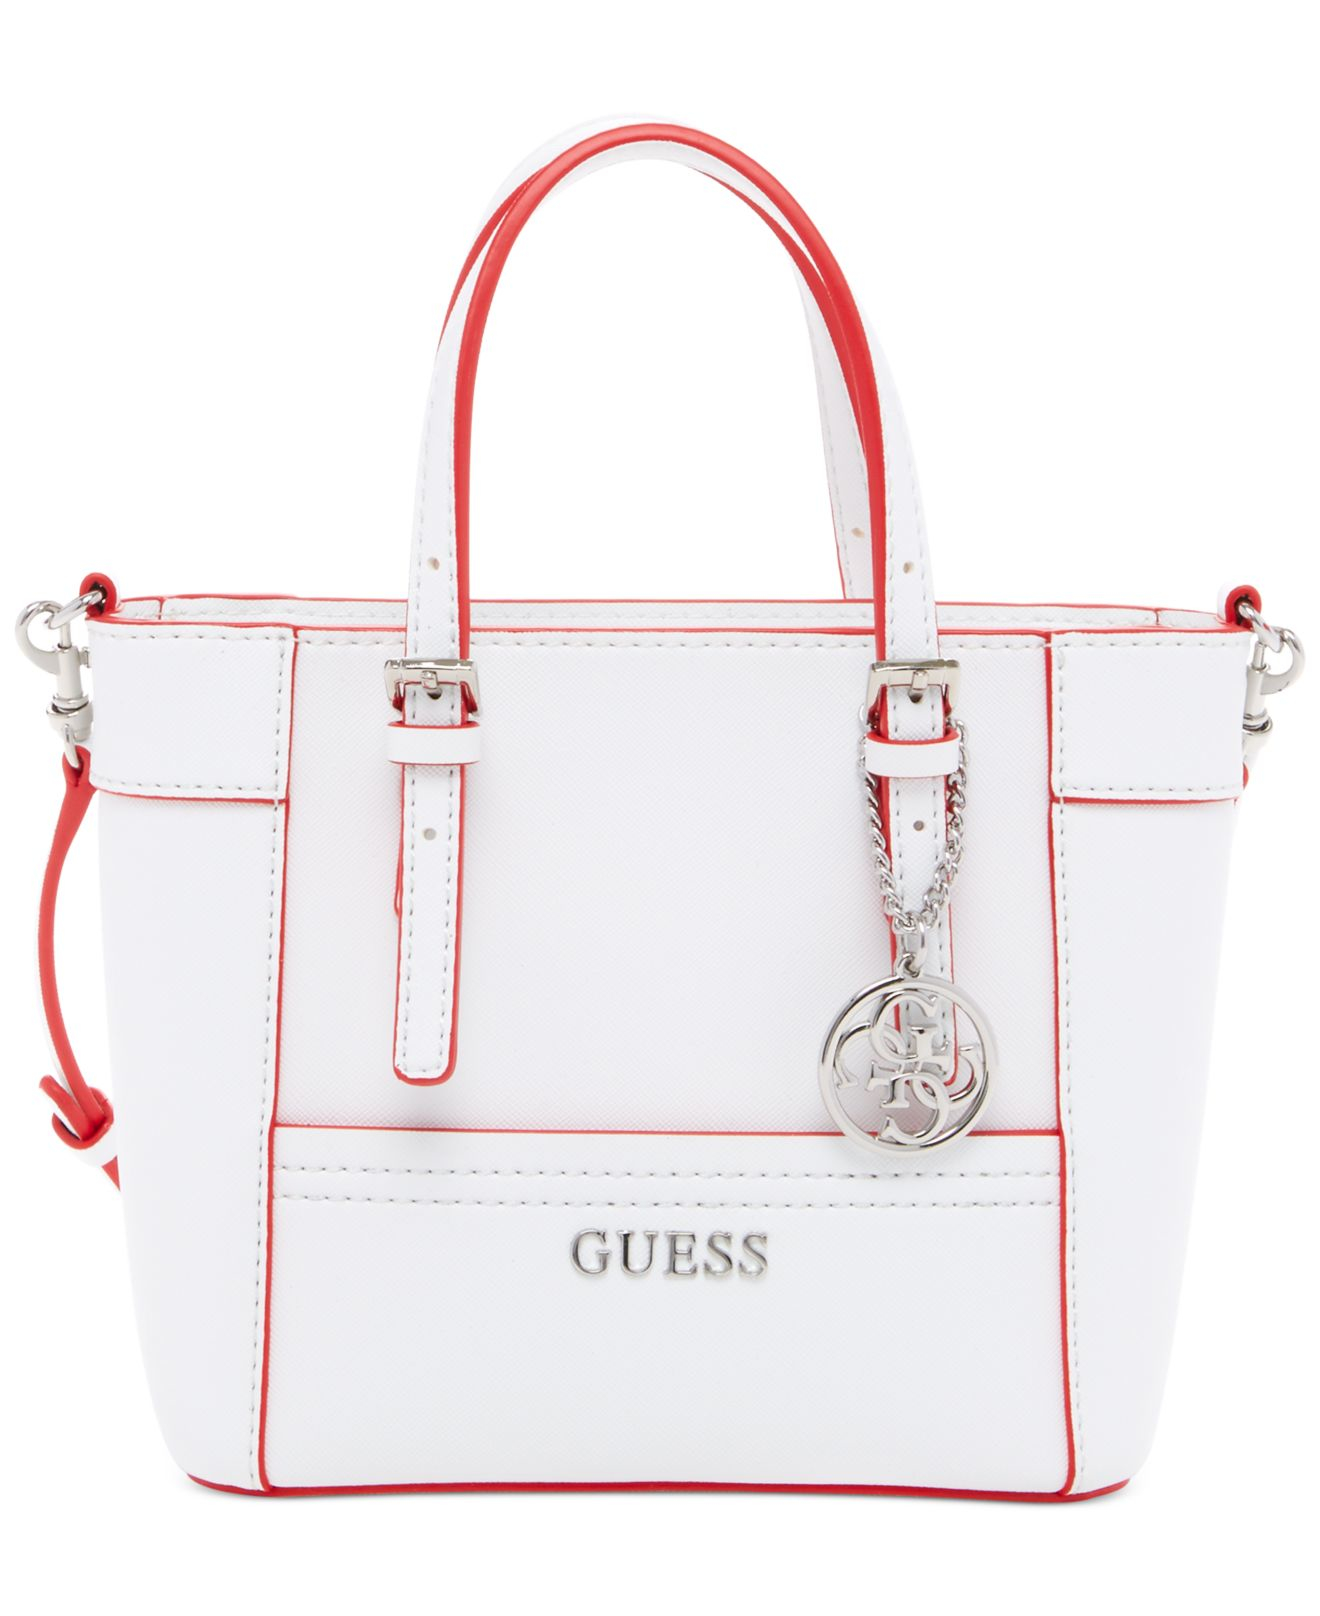 fef7e2a0193c Lyst - Guess Delaney Petite Tote With Crossbody Strap in White